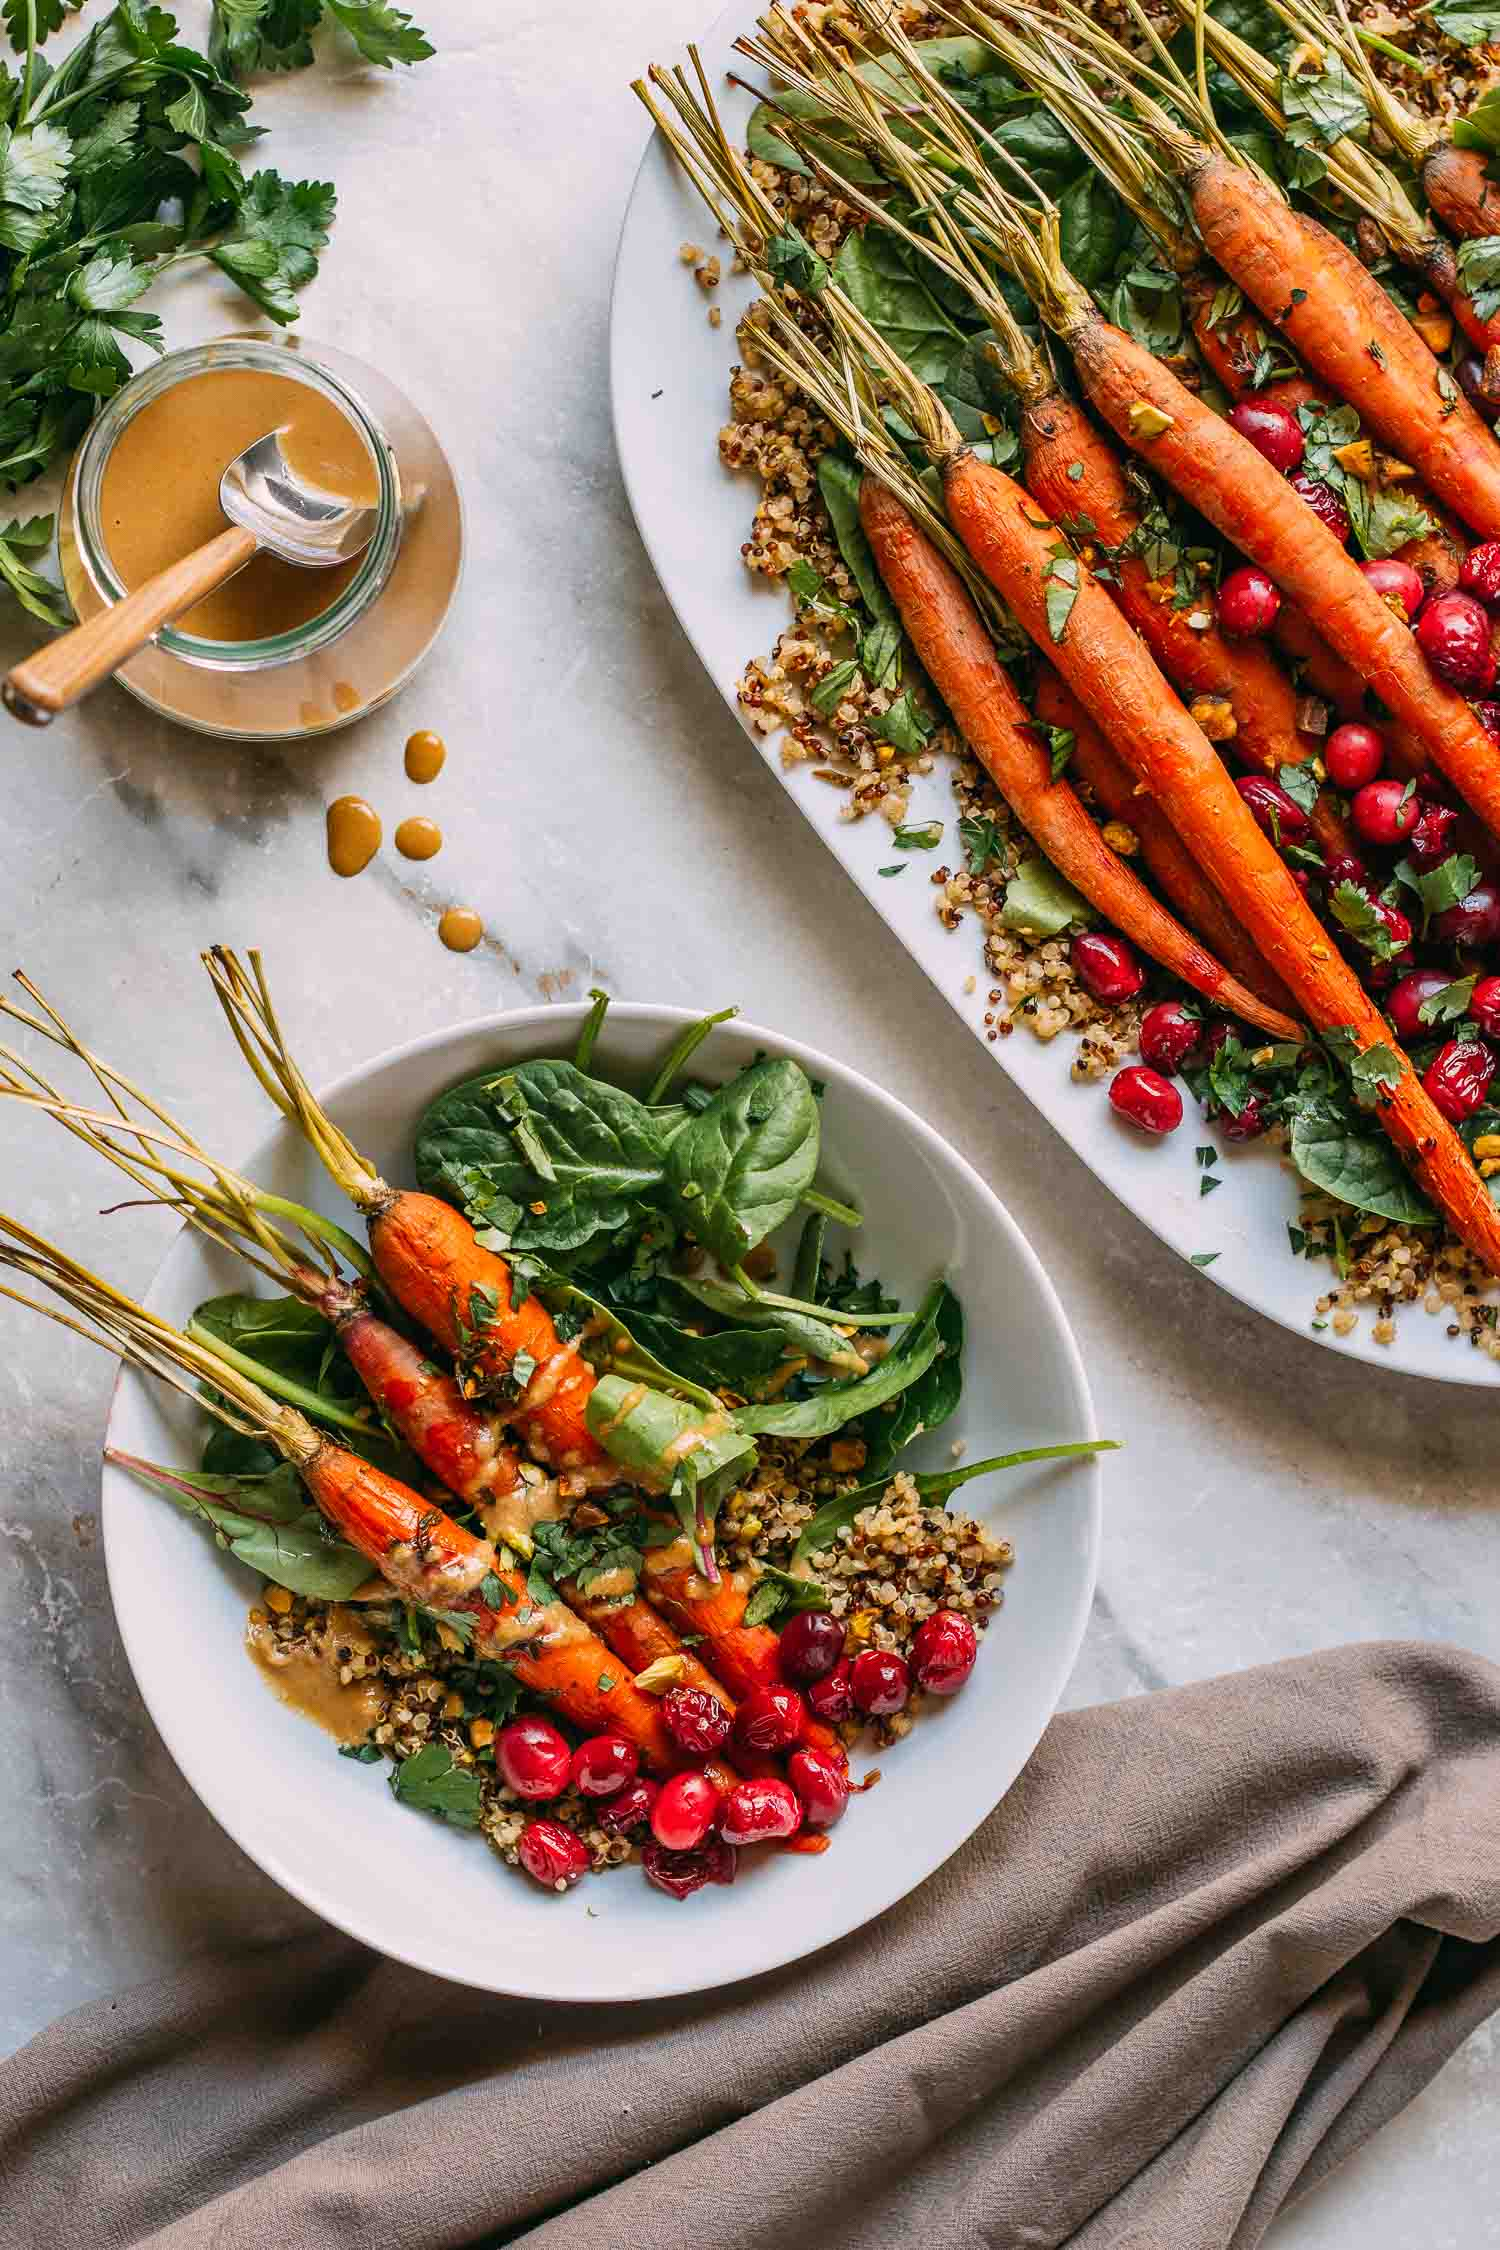 Maple Roasted Carrots and Cranberries with Pistachios #whole food plant based #plant-based #vegan #gluten-free #wfpb #wfpbno #roasted #veggies #maple syrup #cranberries #carrots #lemon #tahini #dressing #quinoa #Spring #greens #Fall #winter #Christmas #Thanksgiving #holiday #buffet #pistachios #vegetables #side dish #entree #bowl #dinner #lunch #recipe #healthy #recipes